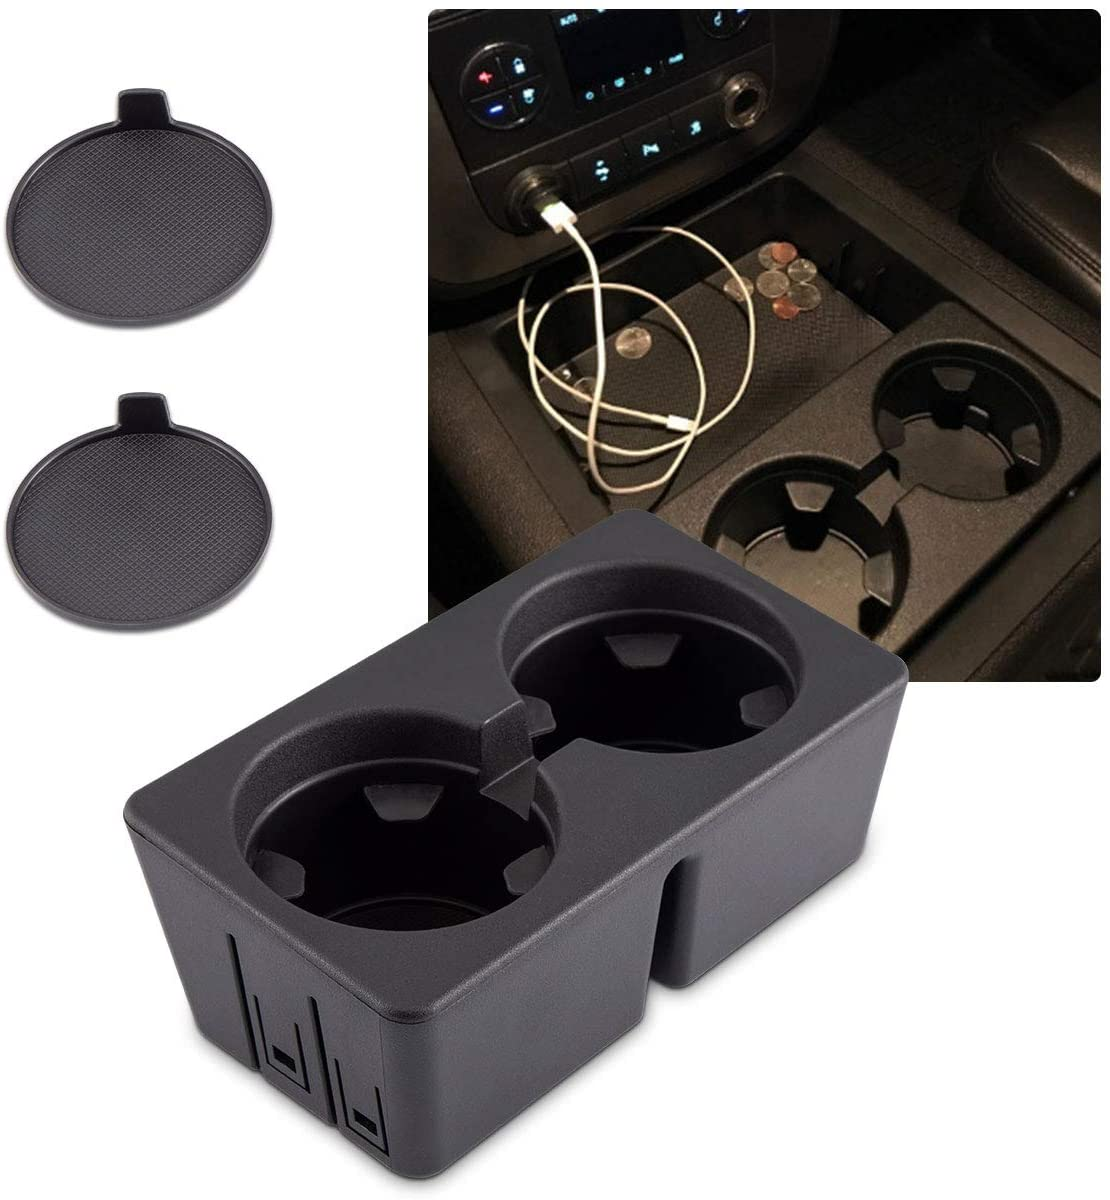 Eleven Guns Dual Cup Holder Insert for 19154712 Chevy Silverado Avalanche Suburban GMC Sierra Yukon Escalade Compatible with 2007-2014 Replacement Center Console Beverage Drink Insert